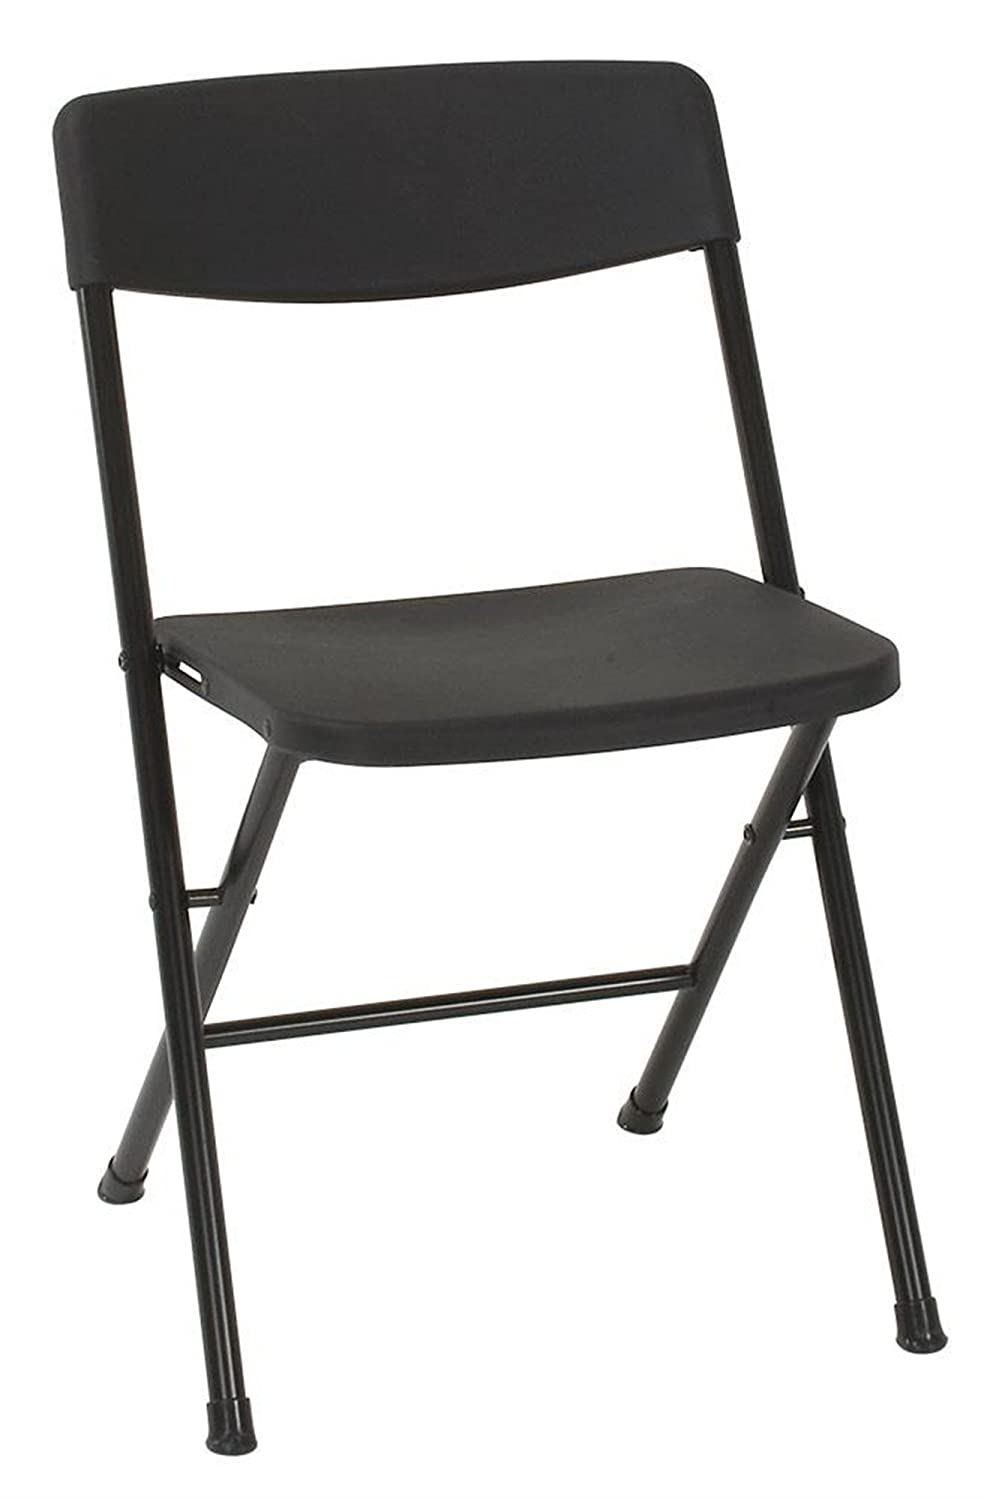 Amazoncom Cosco Resin Pack Folding Chair With Molded Seat And - Collapsible chairs